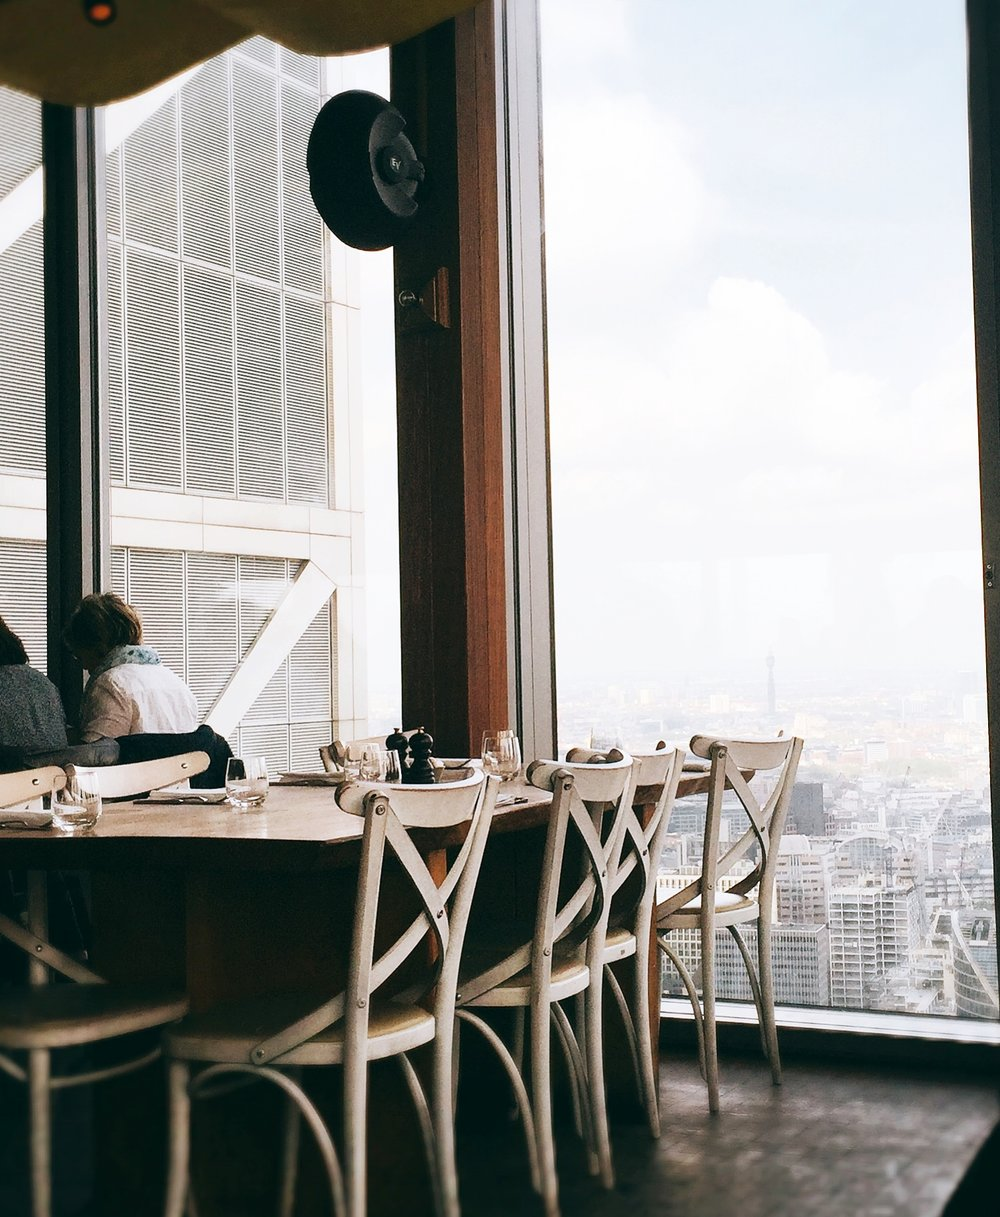 Duck and Waffle interior